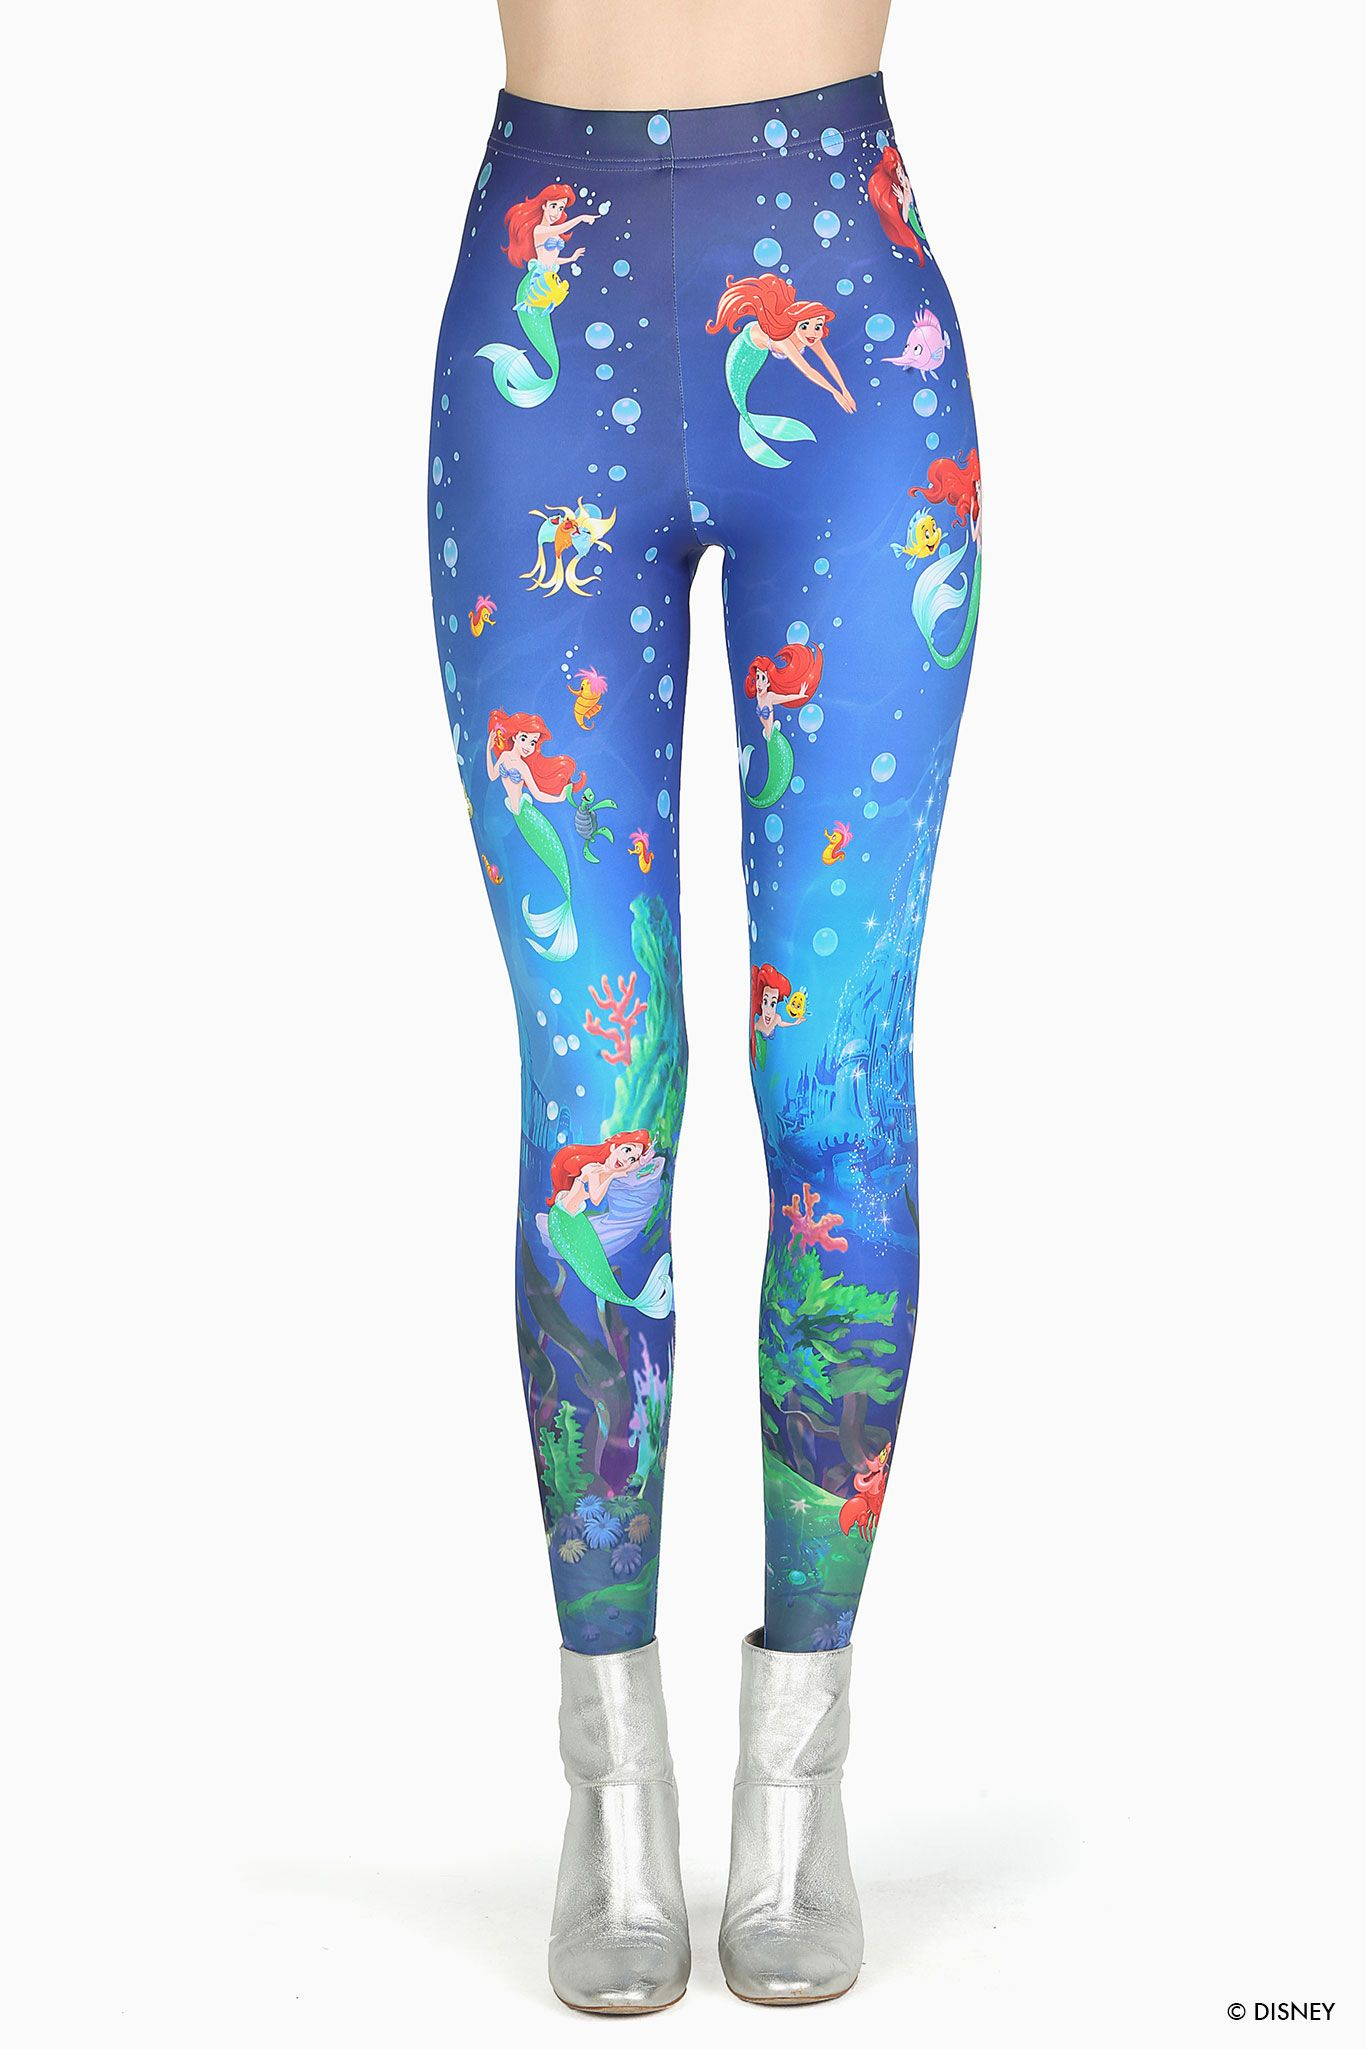 4b014d8d2ab17 The Little Mermaid HWMF Leggings – 7 DAY UNLIMITED ($85AUD) by BlackMilk  Clothing